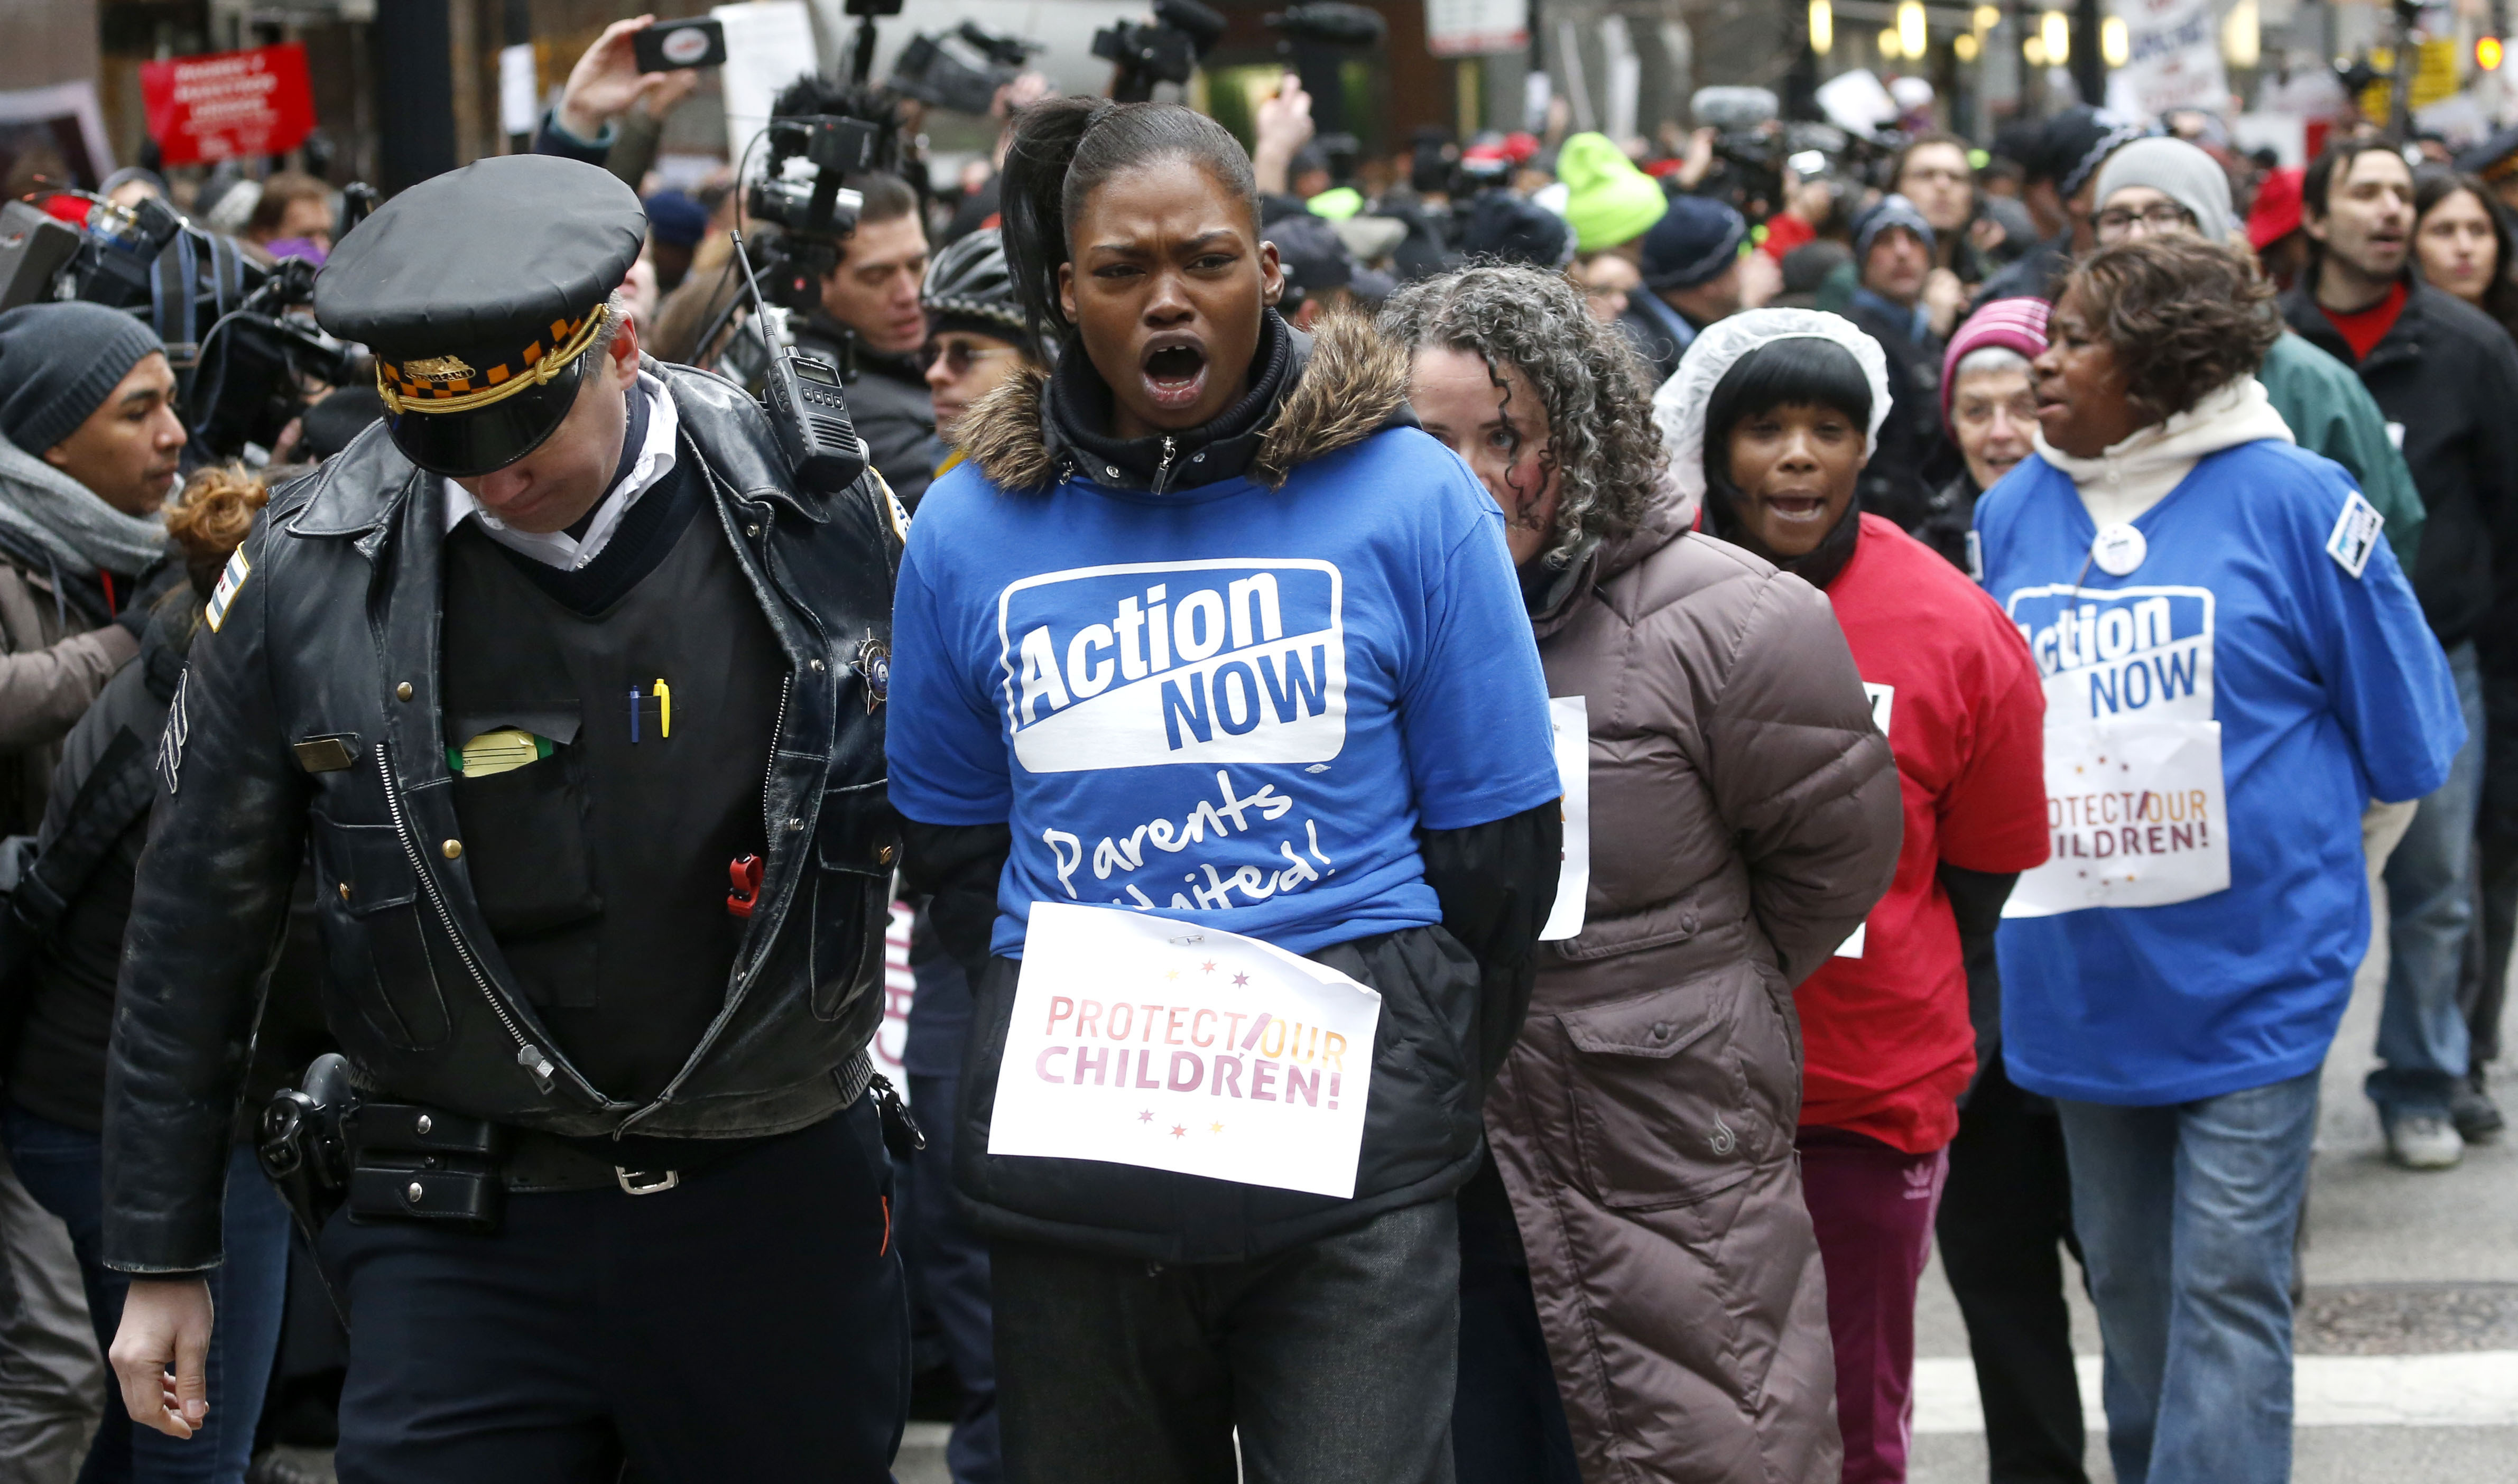 In Chicago, Dozens Arrested As They Protest School Closures